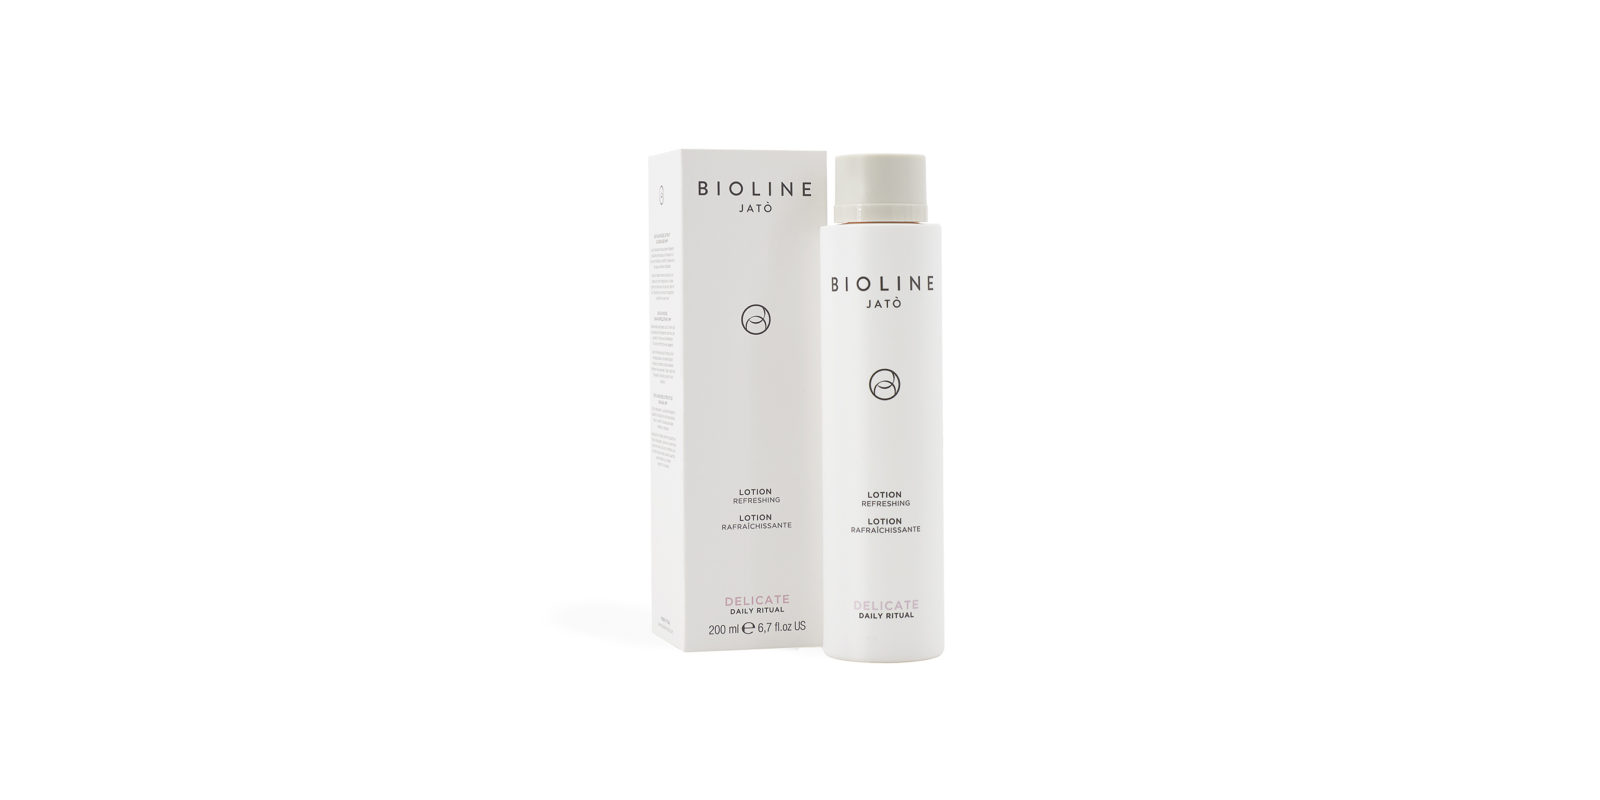 Bioline Jatò Delicate Daily Ritual Lotion Refreshing